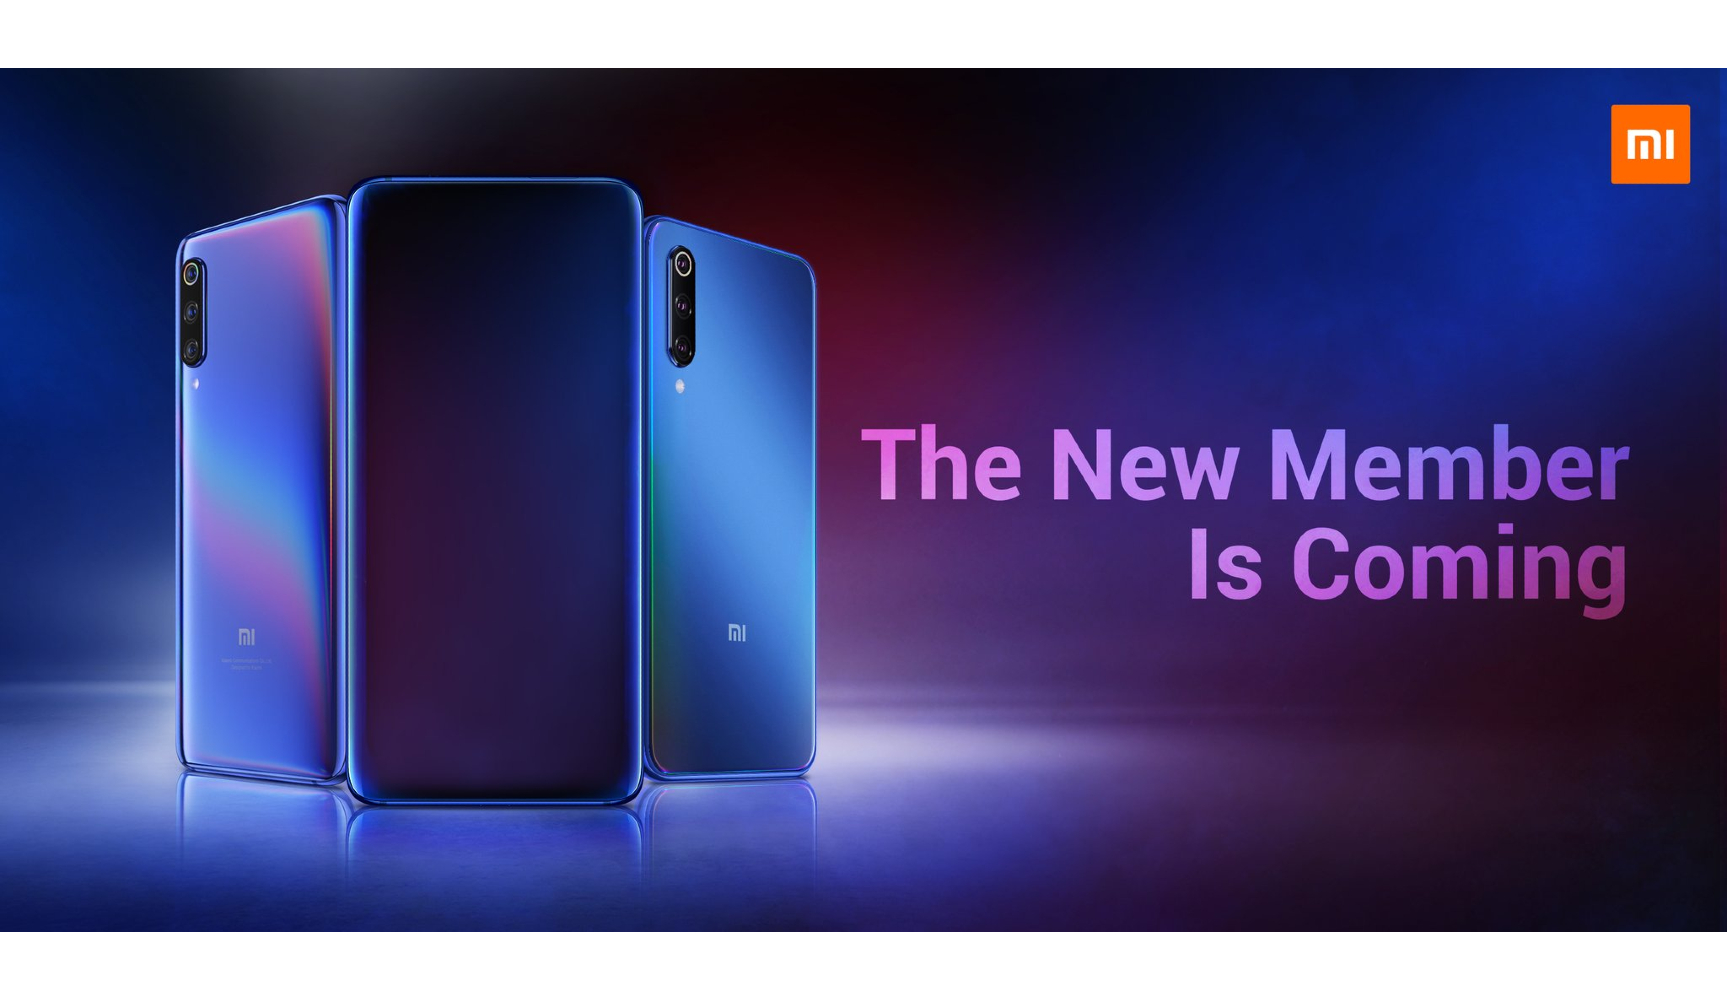 Xiaomi starts teasing Mi 9T with notchless display, triple cameras